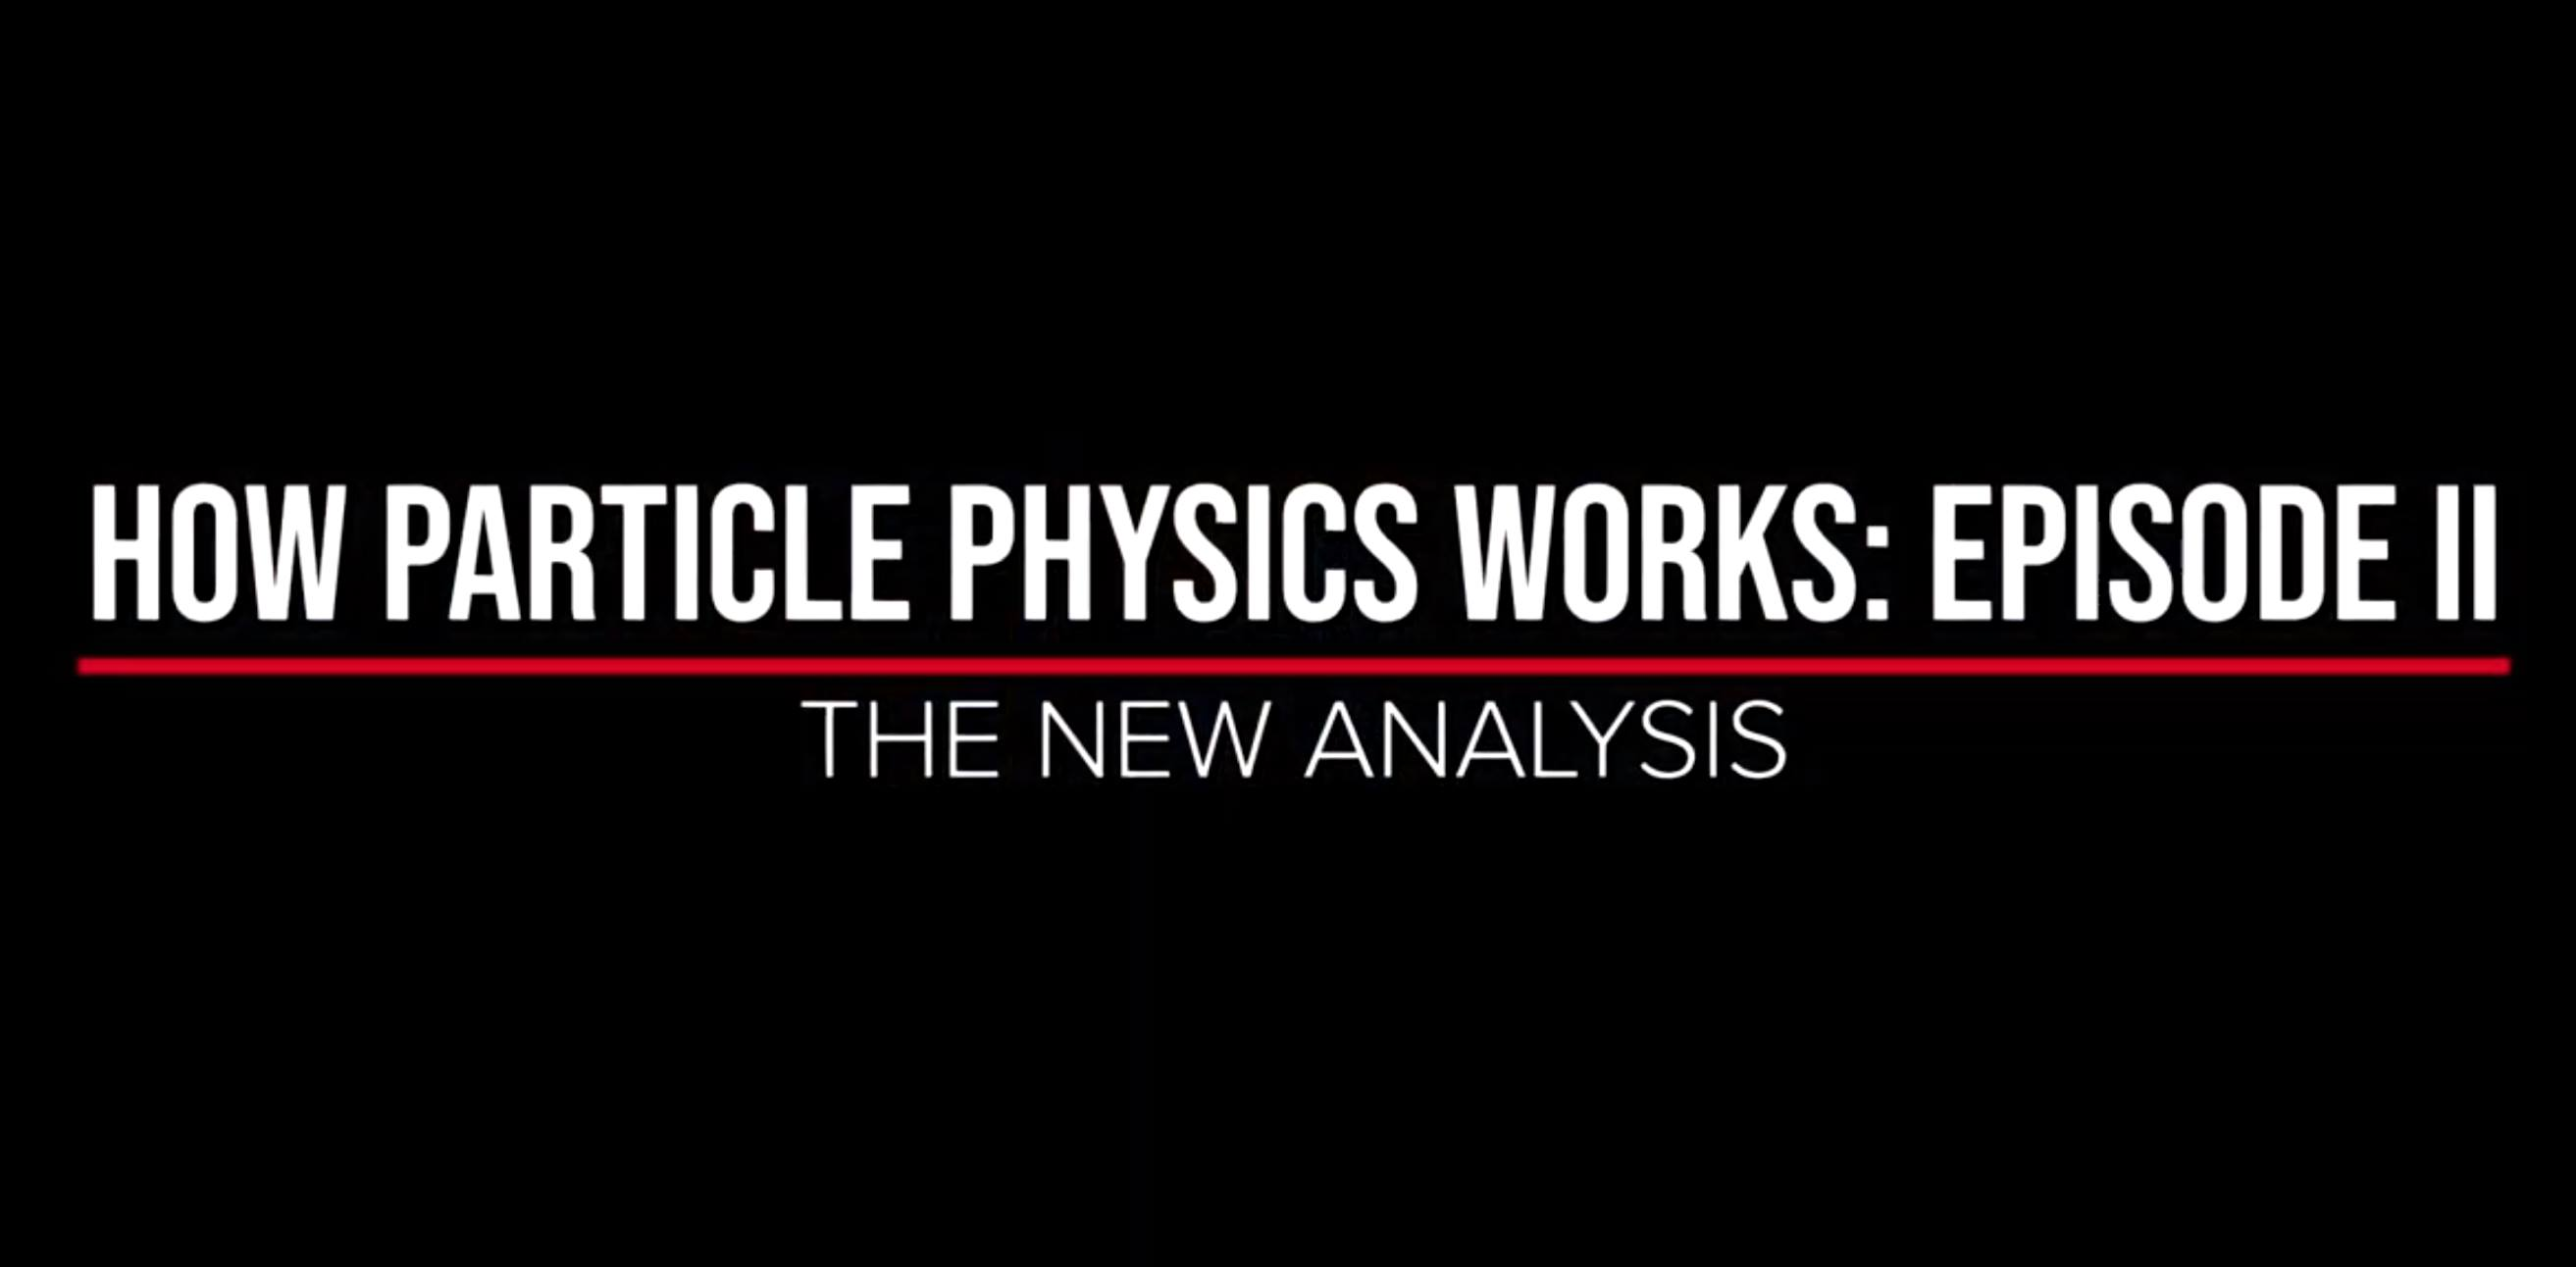 Hopes and worries on B-physics anomalies